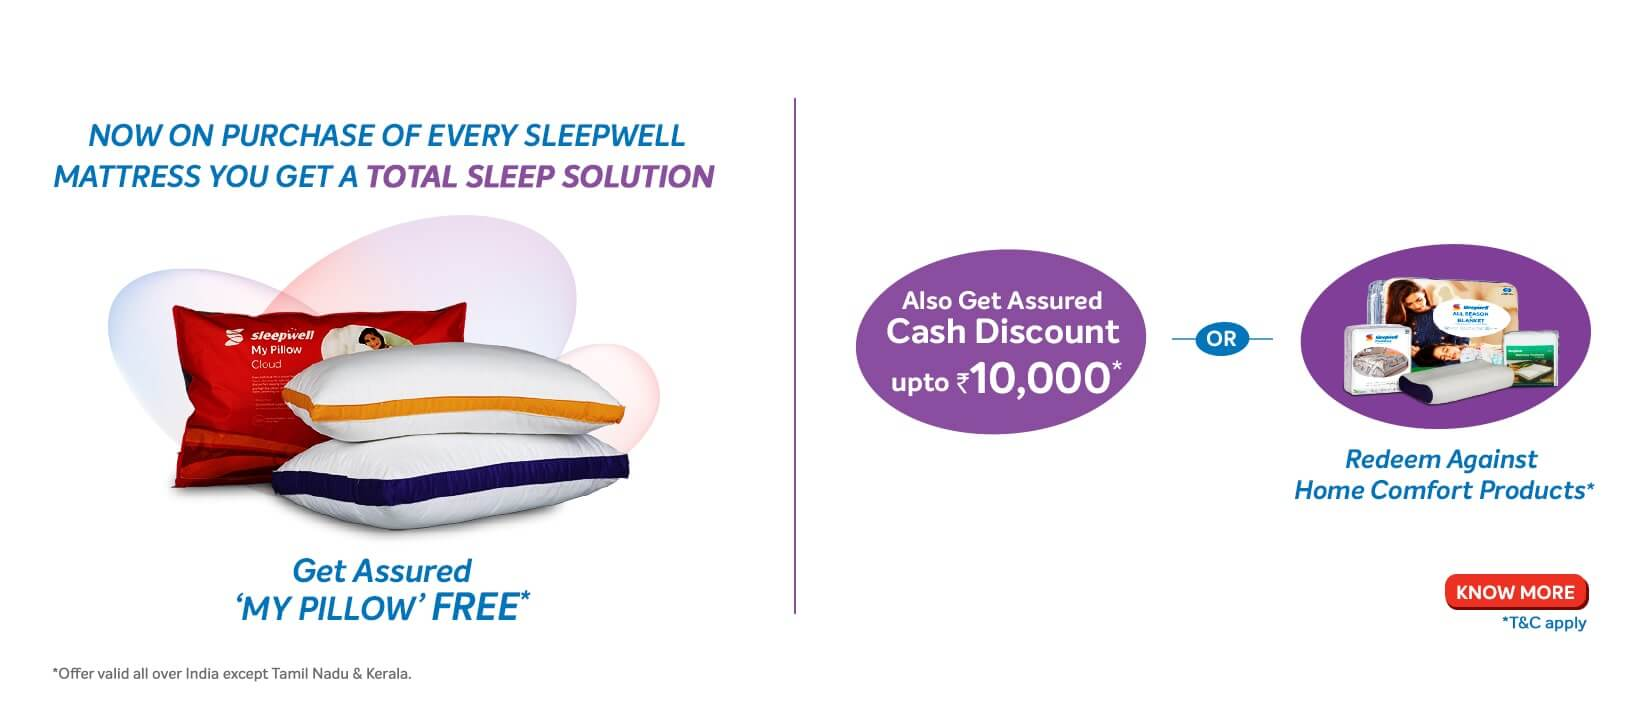 Sleepwell Mattress Offer 2019